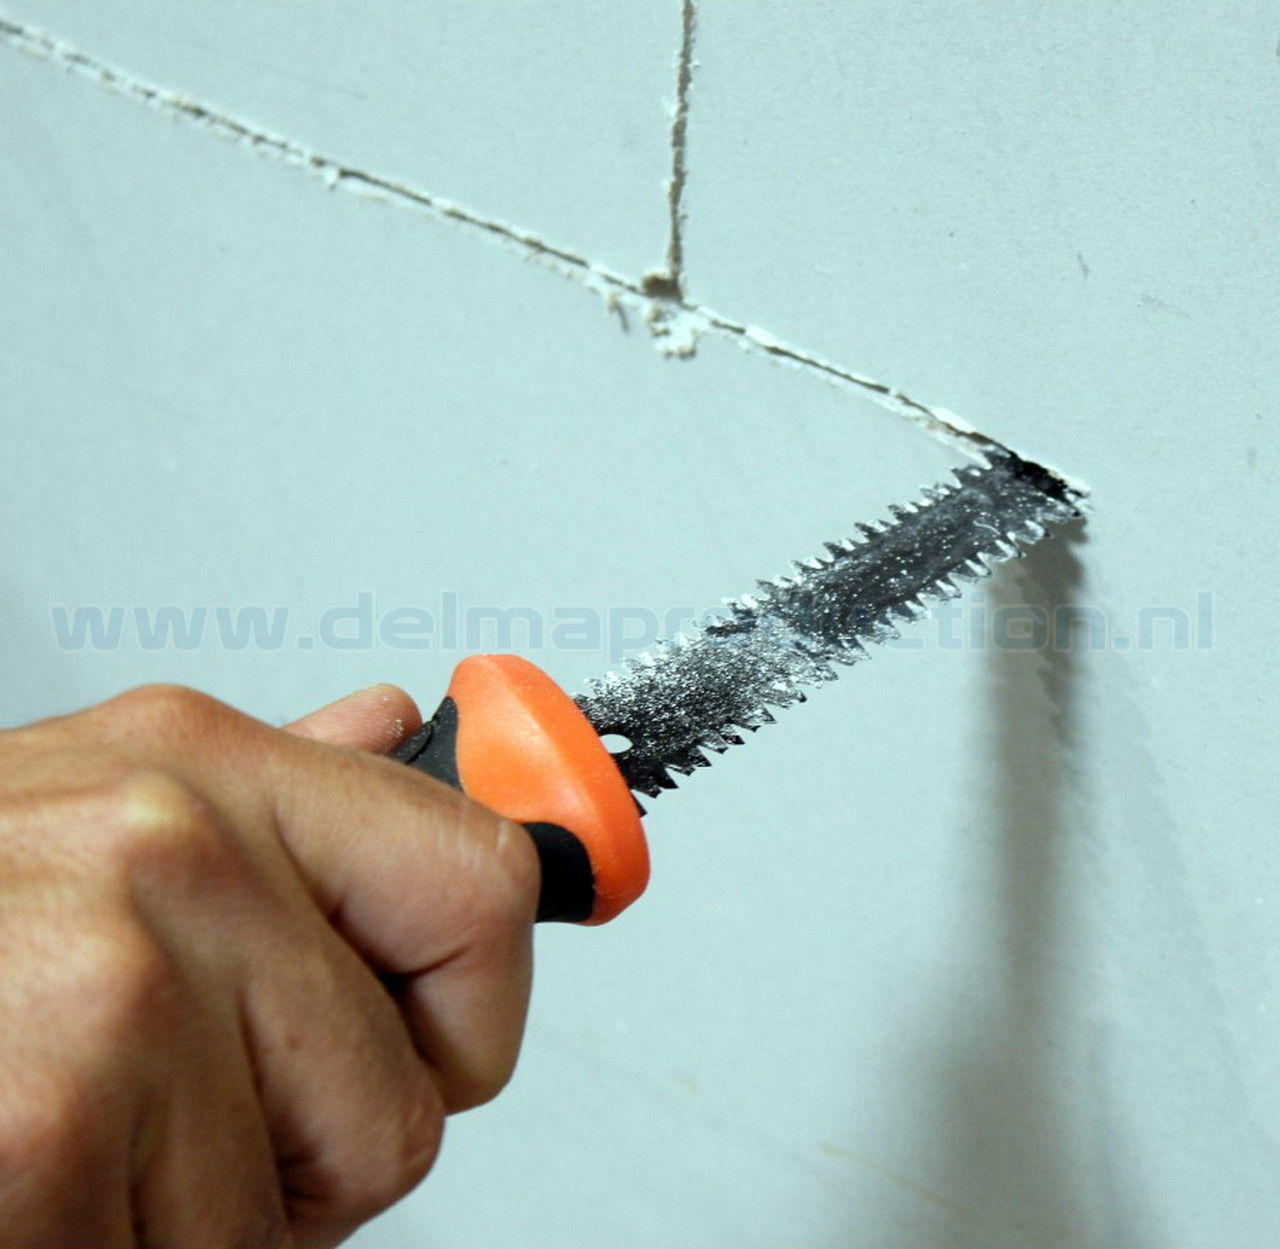 Drywall jaw saw (3)